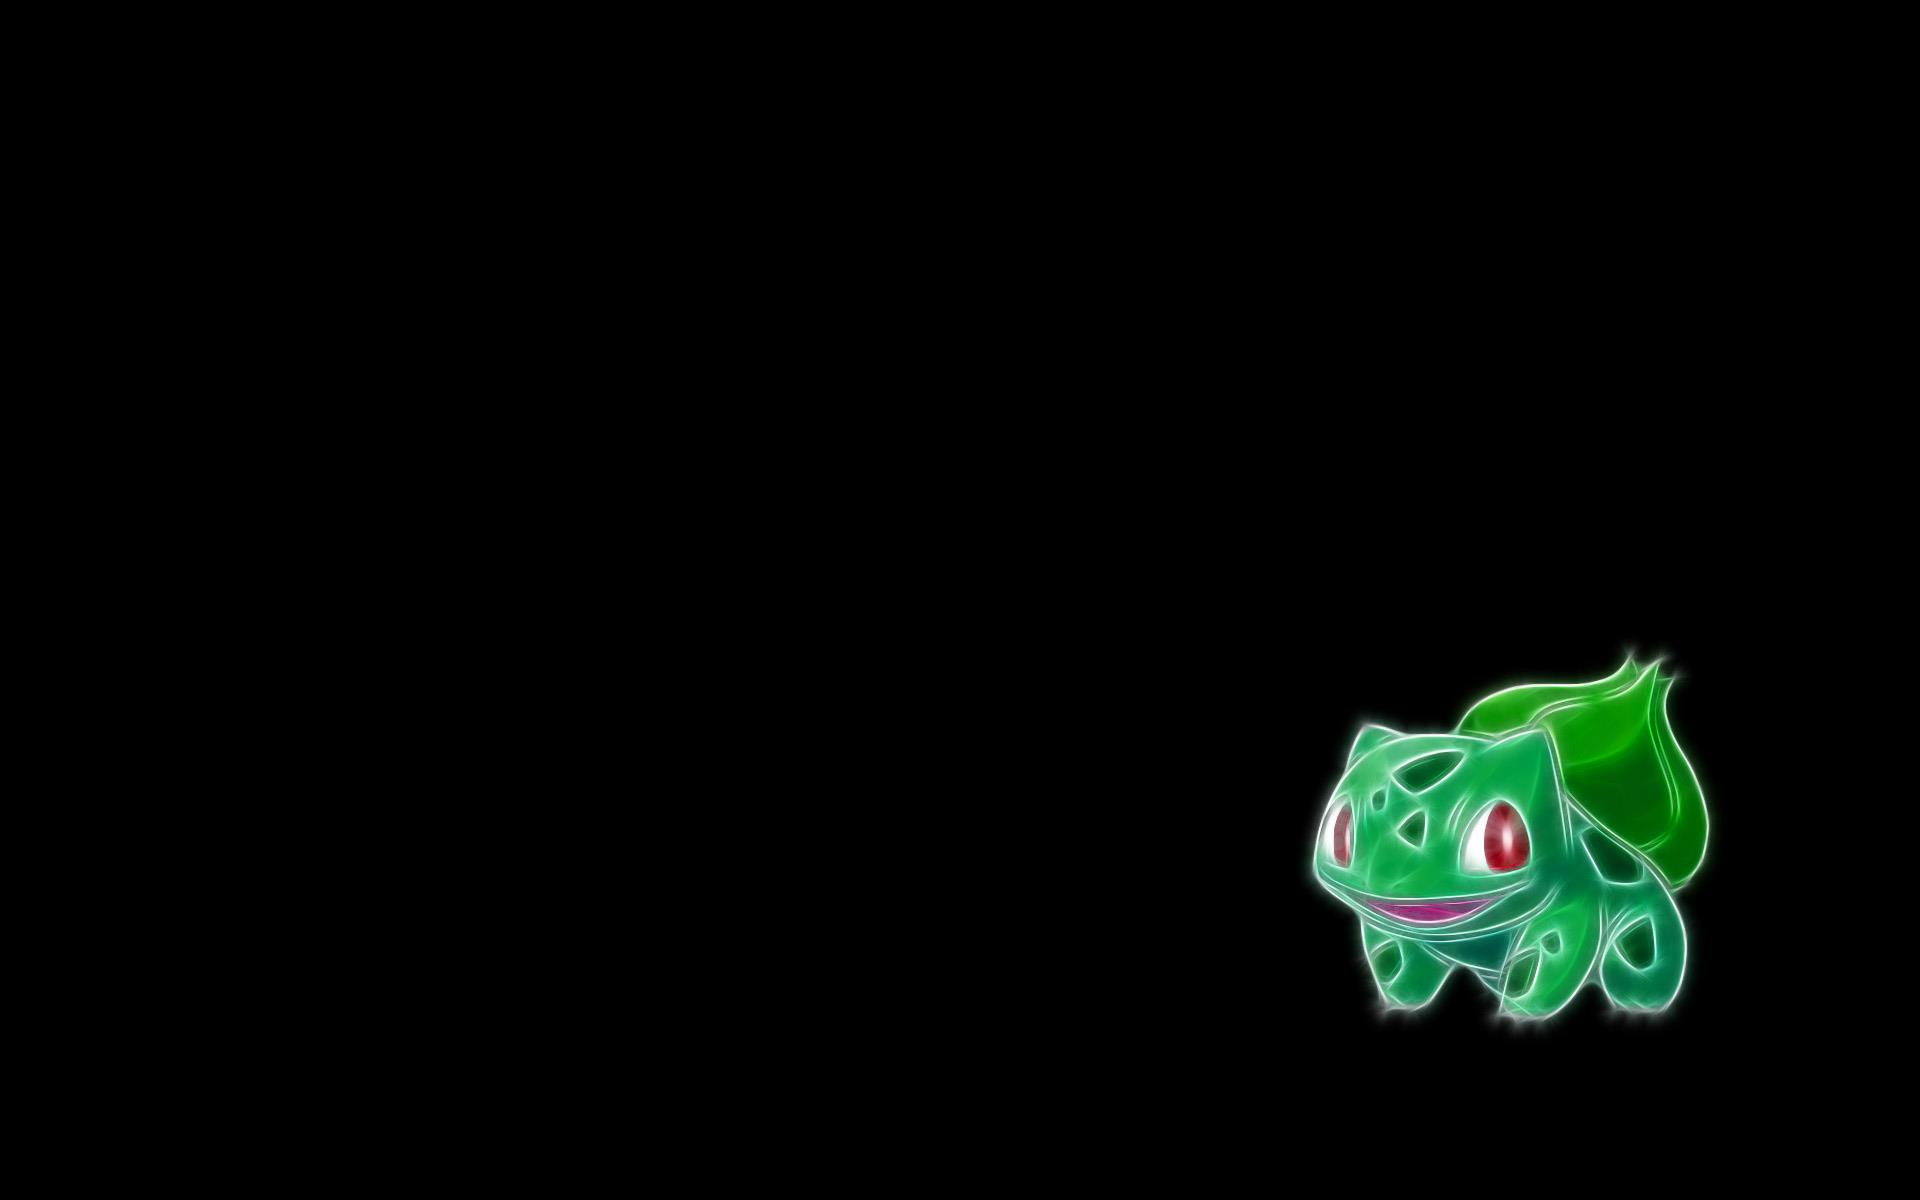 bulbasaur-pokemon-wallpaper-free-download